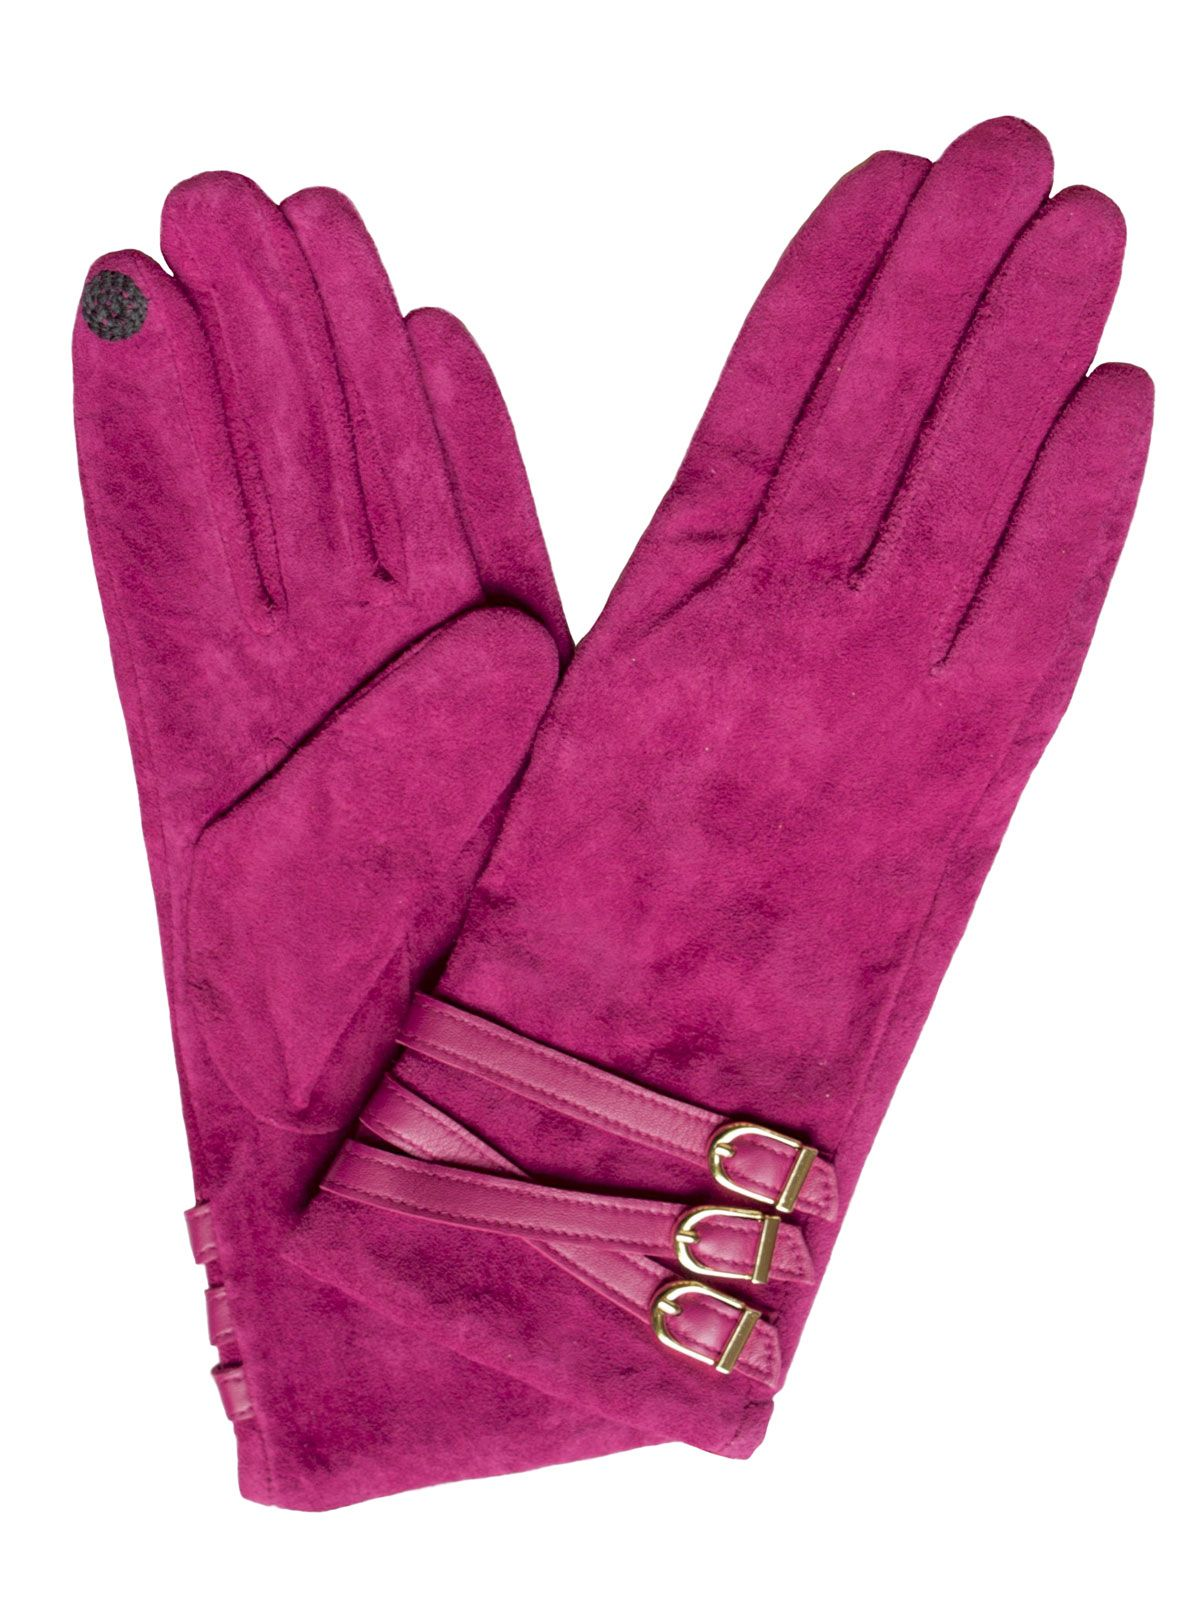 272897a7969 Dents Women's Suede Touchscreen Gloves, 3-buckle strap, Hot Pink. Elegant  and